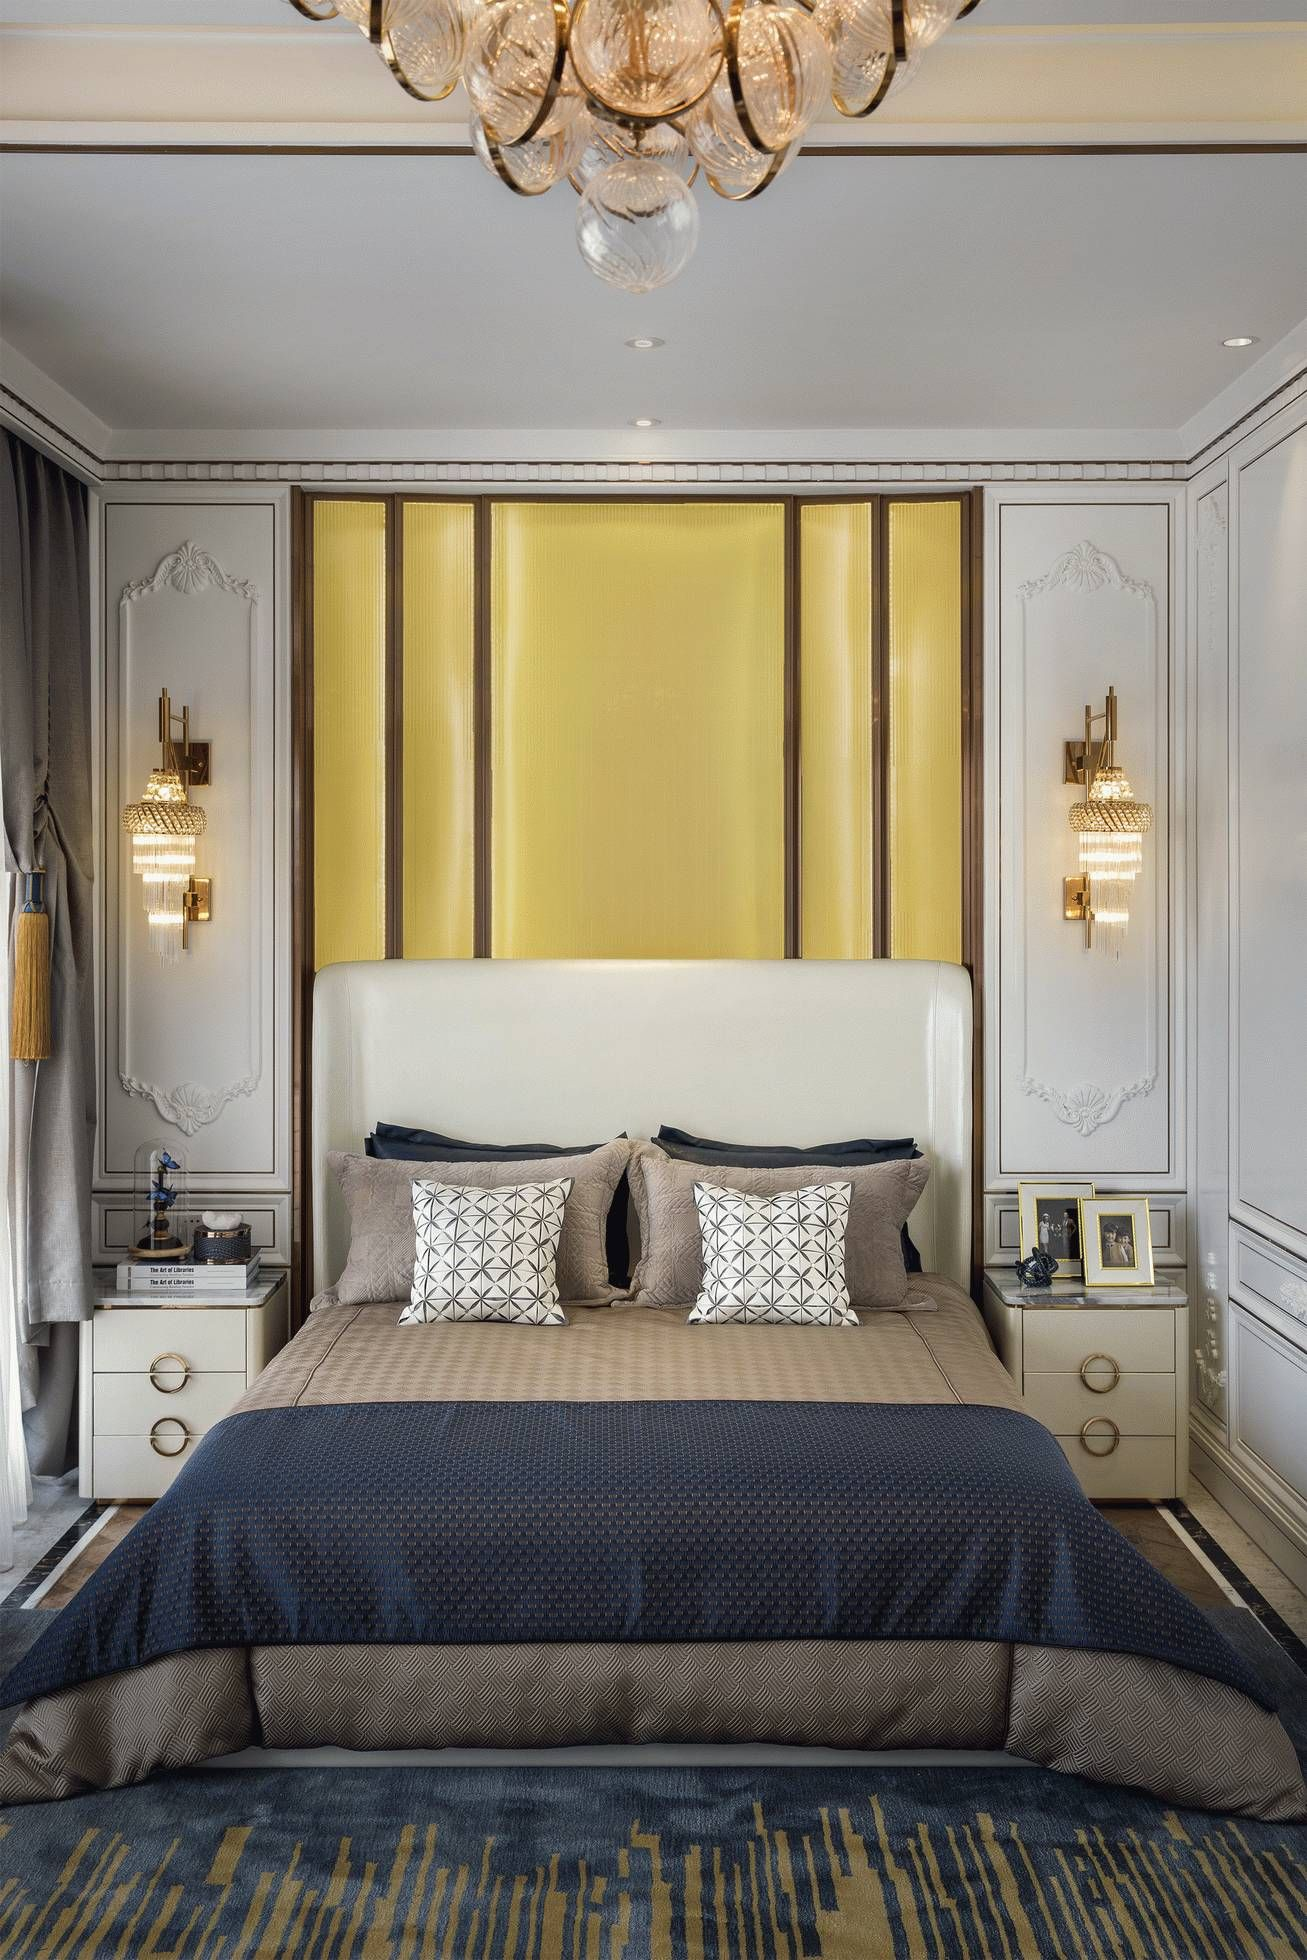 Pin by Vicky Zheng on FF | Pinterest | High headboards, Bedrooms and ...